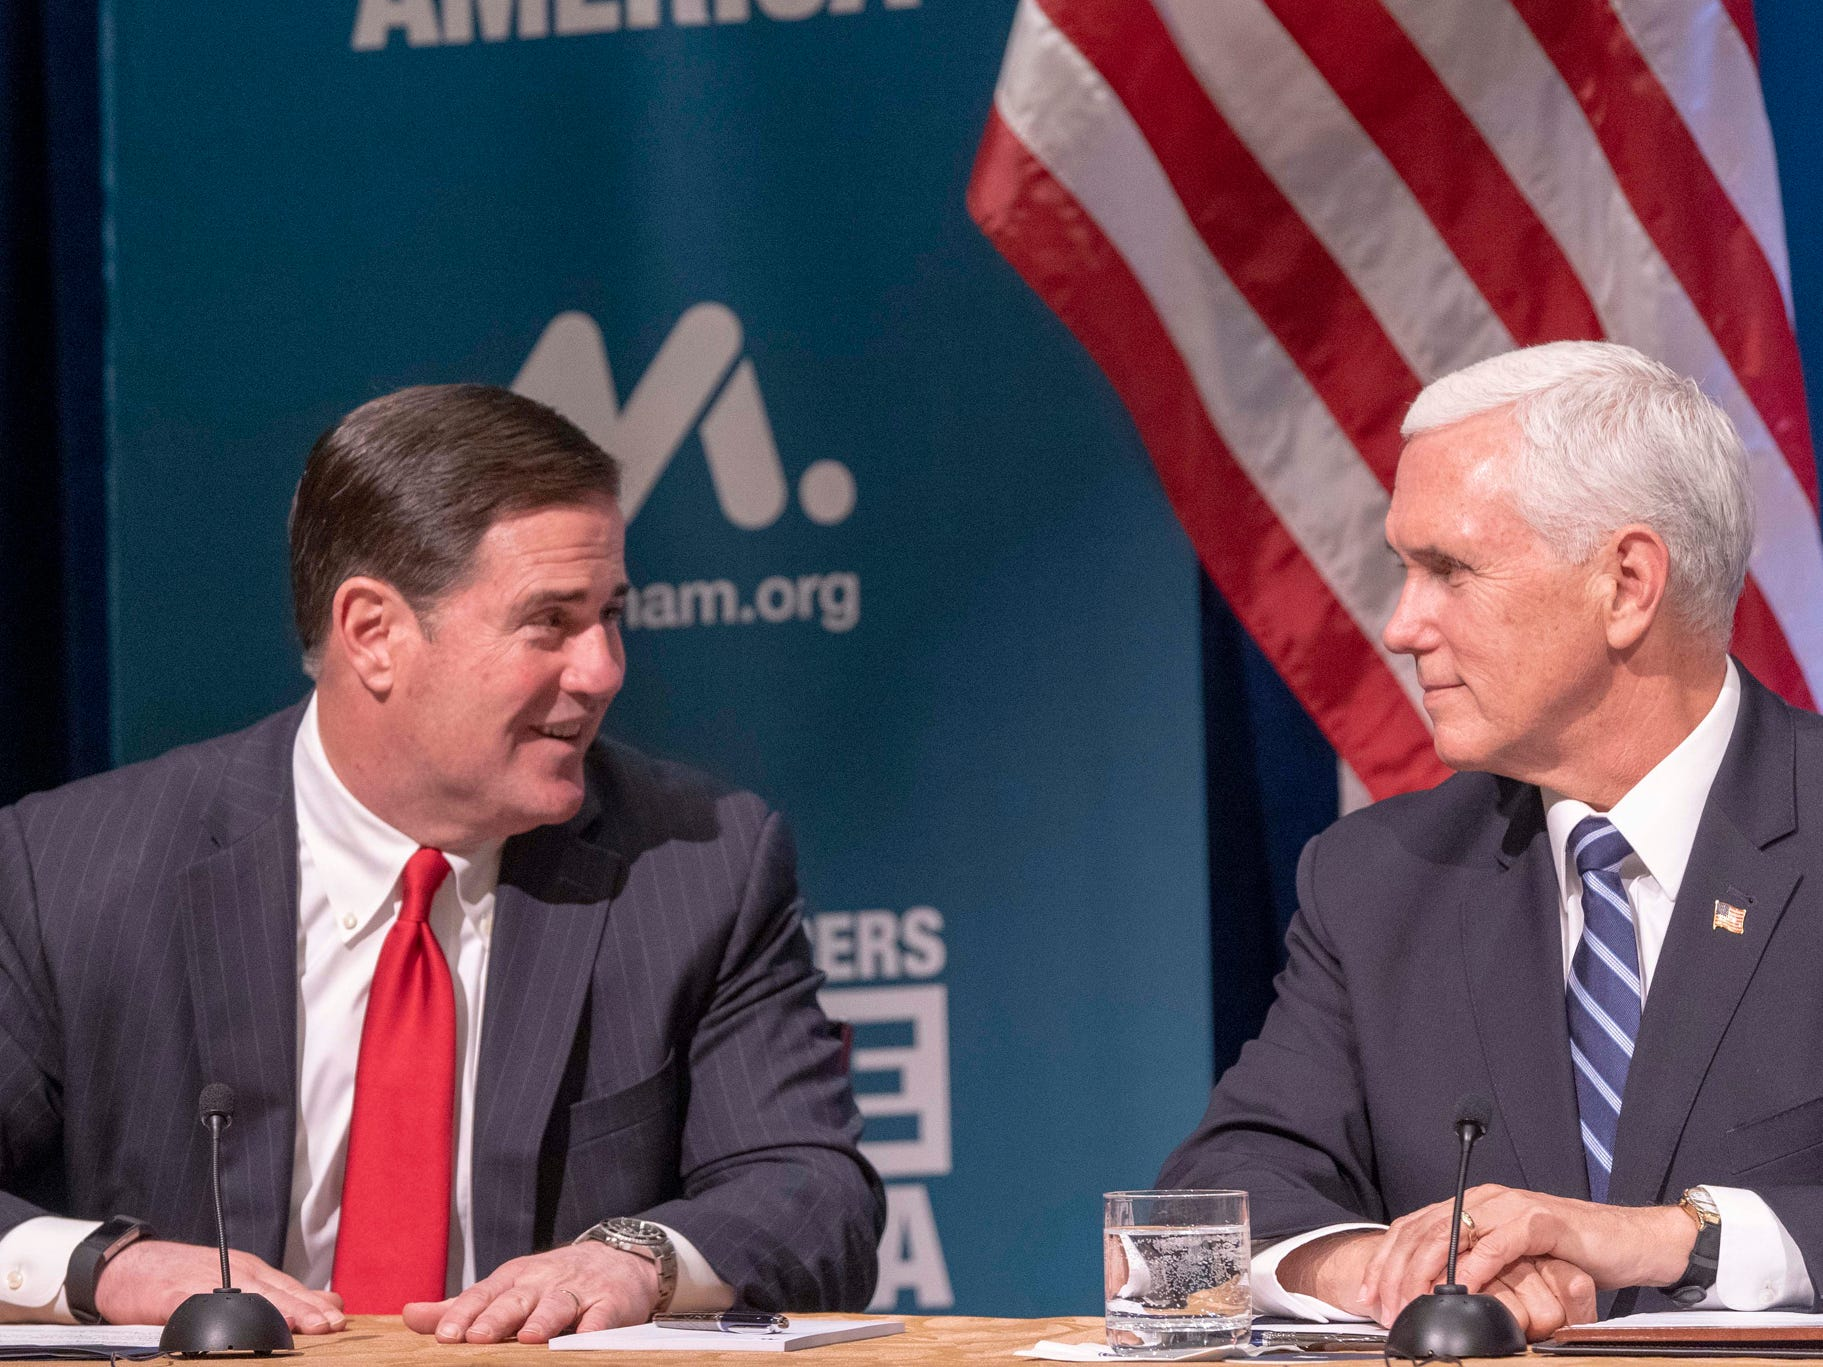 Arizona Gov. Doug Ducey (left) and Vice President Mike Pence speak during the National Association of Manufacturers meeting at the Phoenician resort in Phoenix on March 5, 2019.